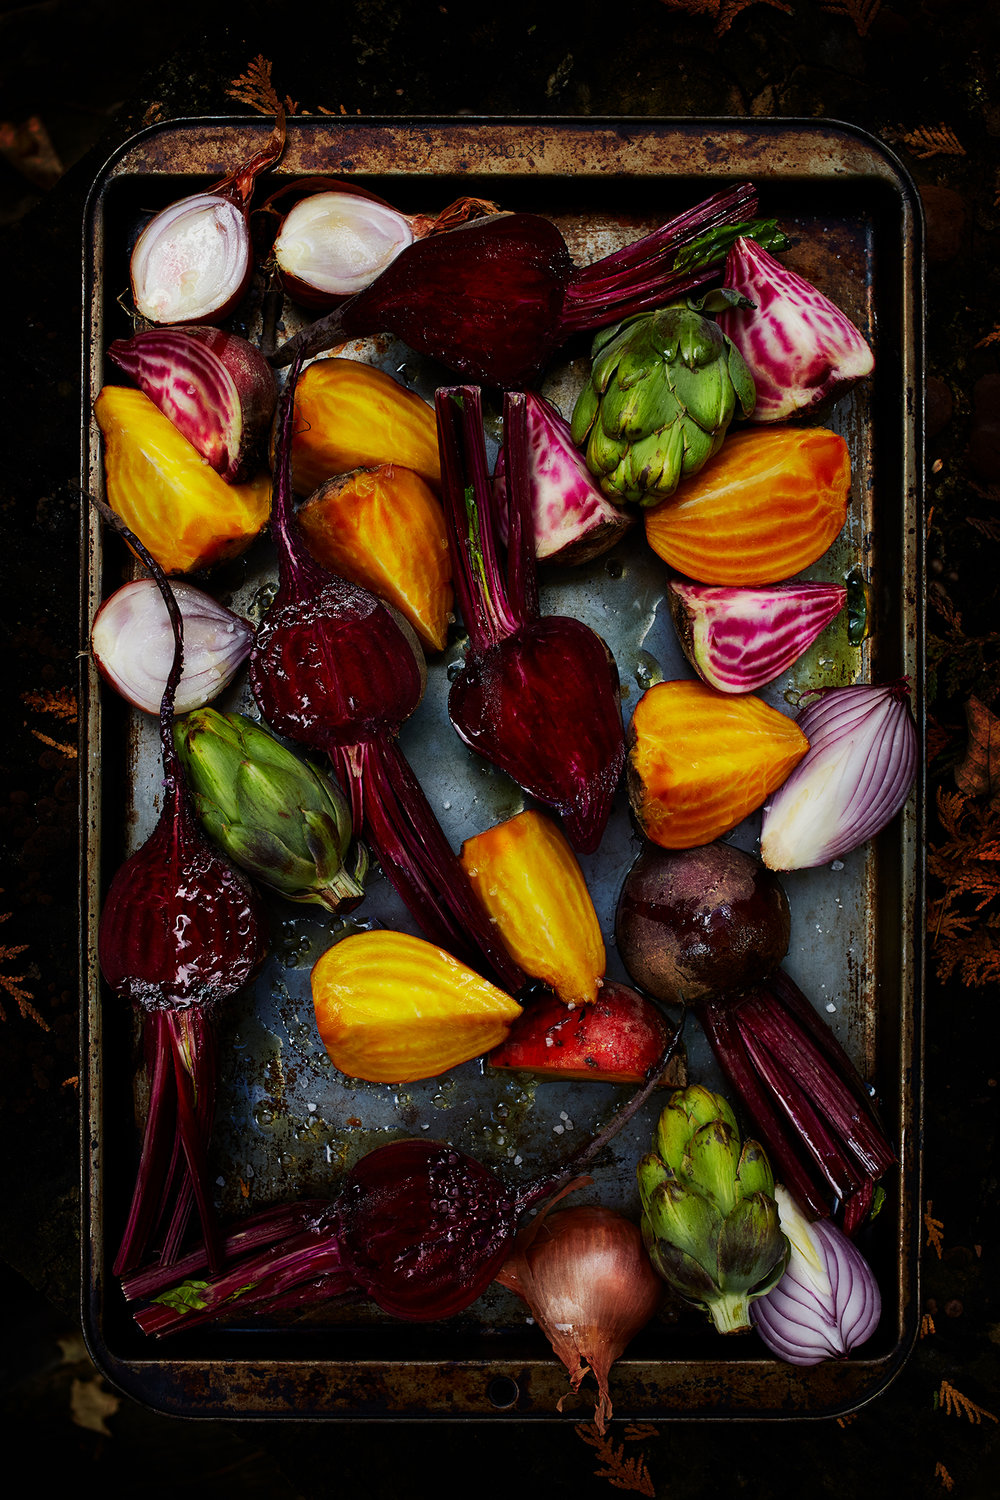 Fall_RoastVeg_04_layered.jpg